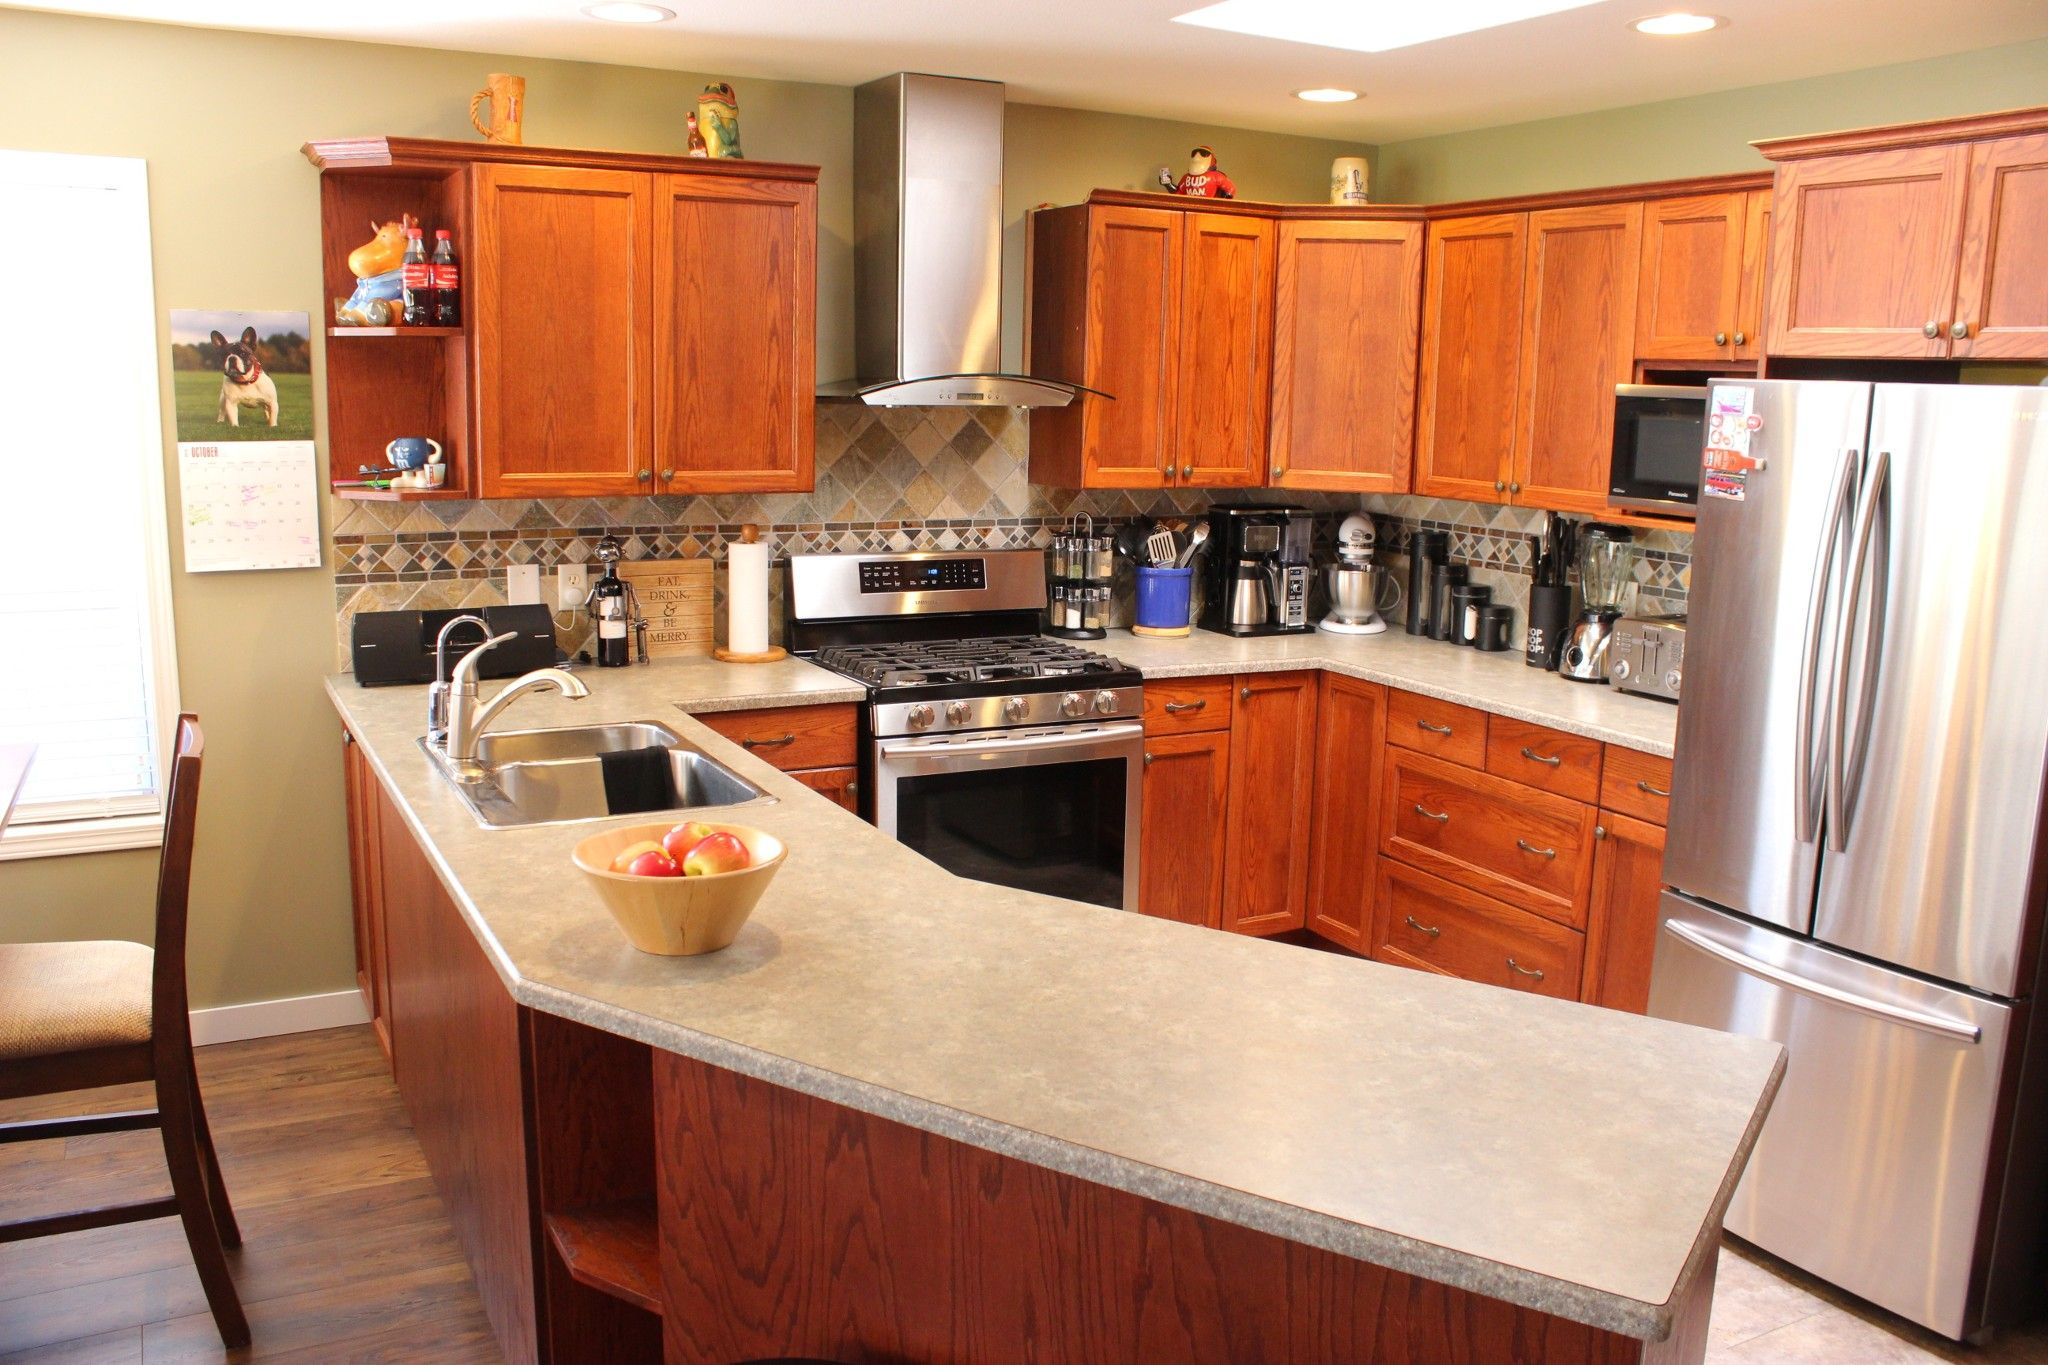 Photo 6: Photos: 3696 Navatanee Drive in Kamloops: South Thompson Valley House for sale : MLS®# 148660